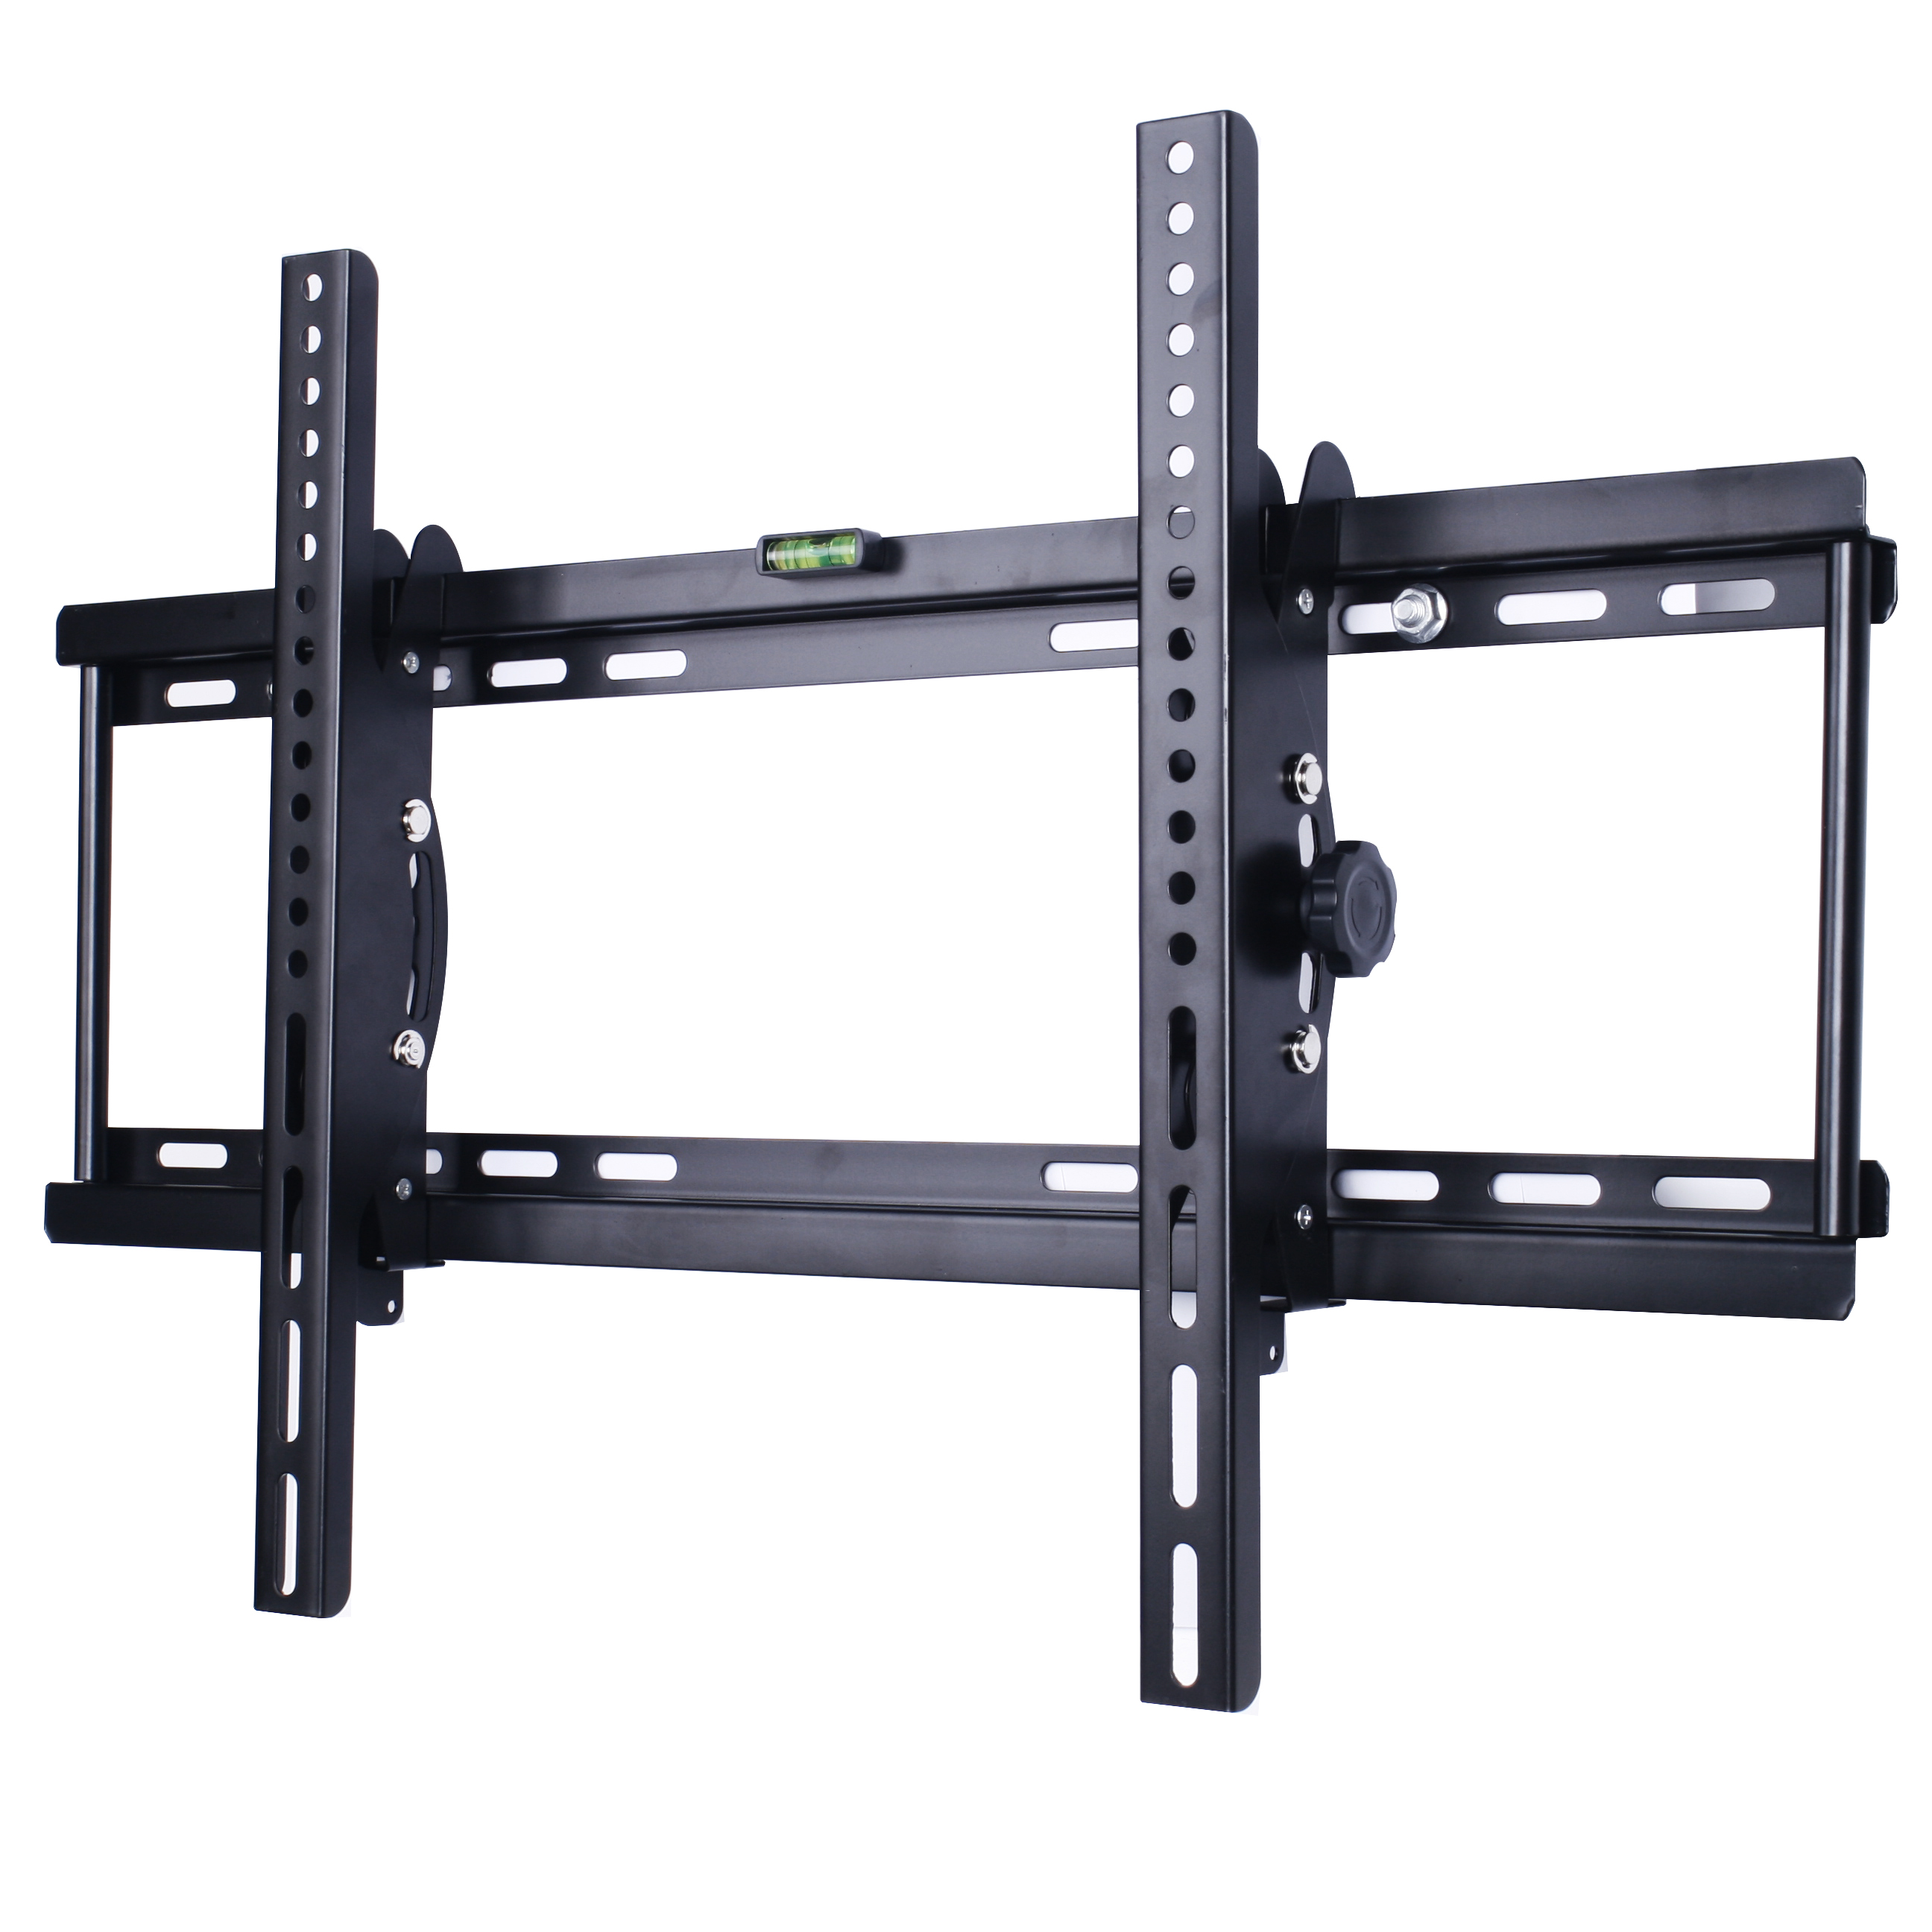 Wall Mount Brackets For Lg Tv Cosmecol